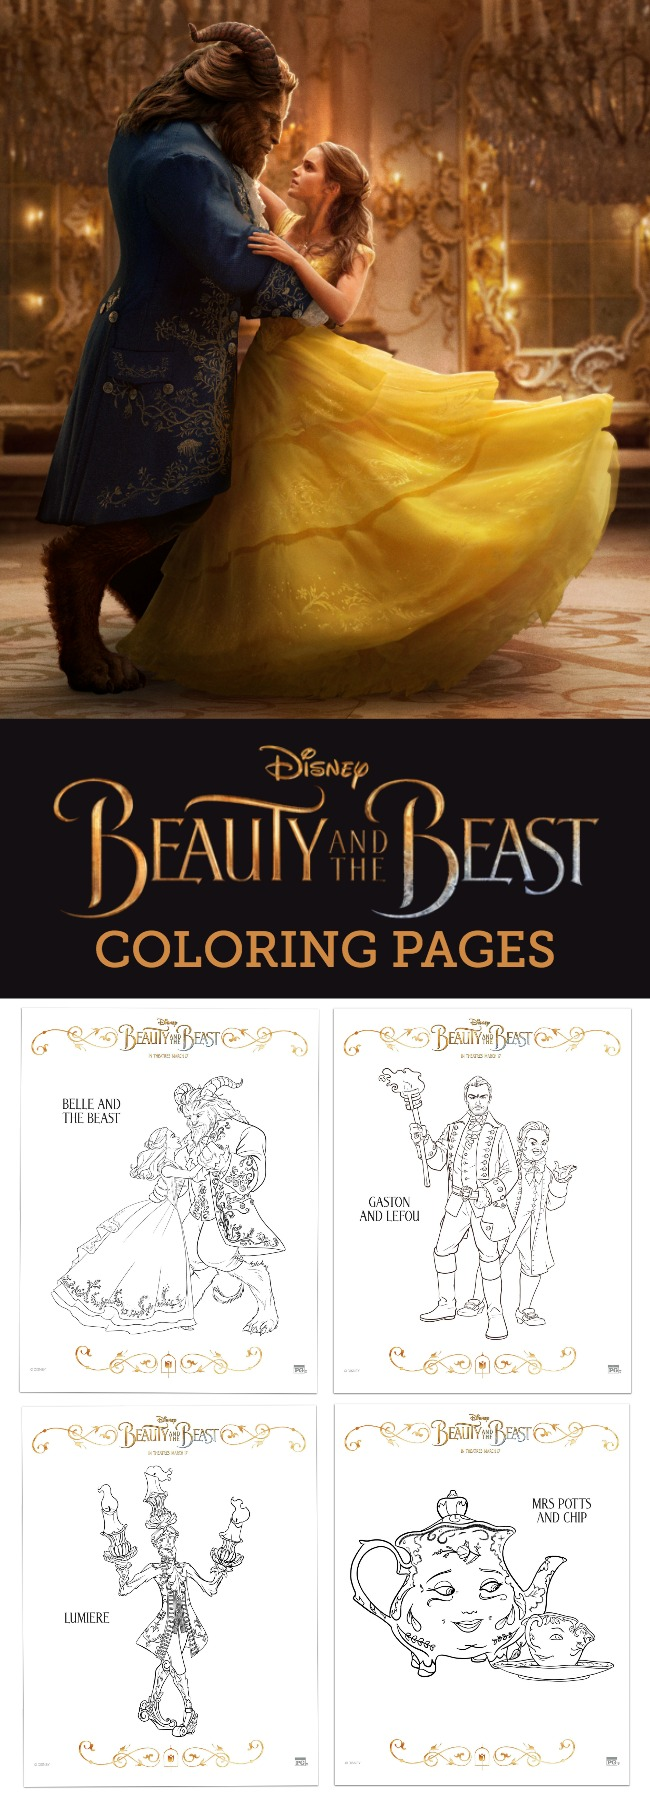 Disney Beauty And The Beast Coloring Pages A Night Owl Blog